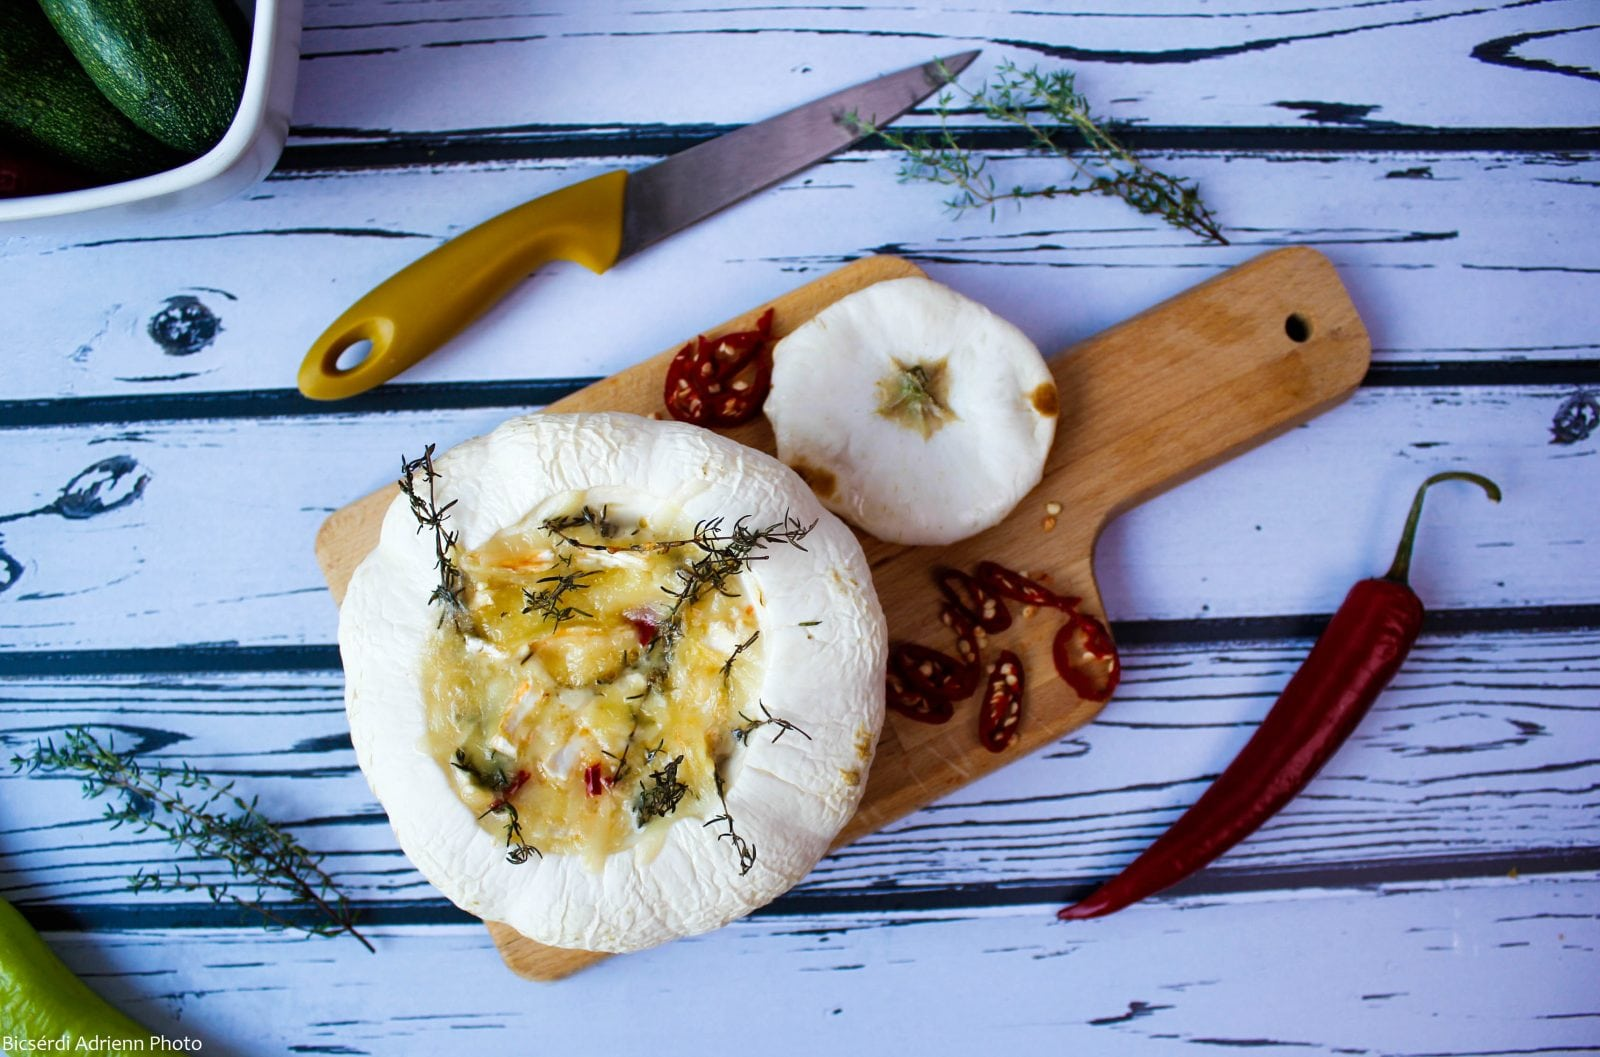 Summer squash baked with cheese